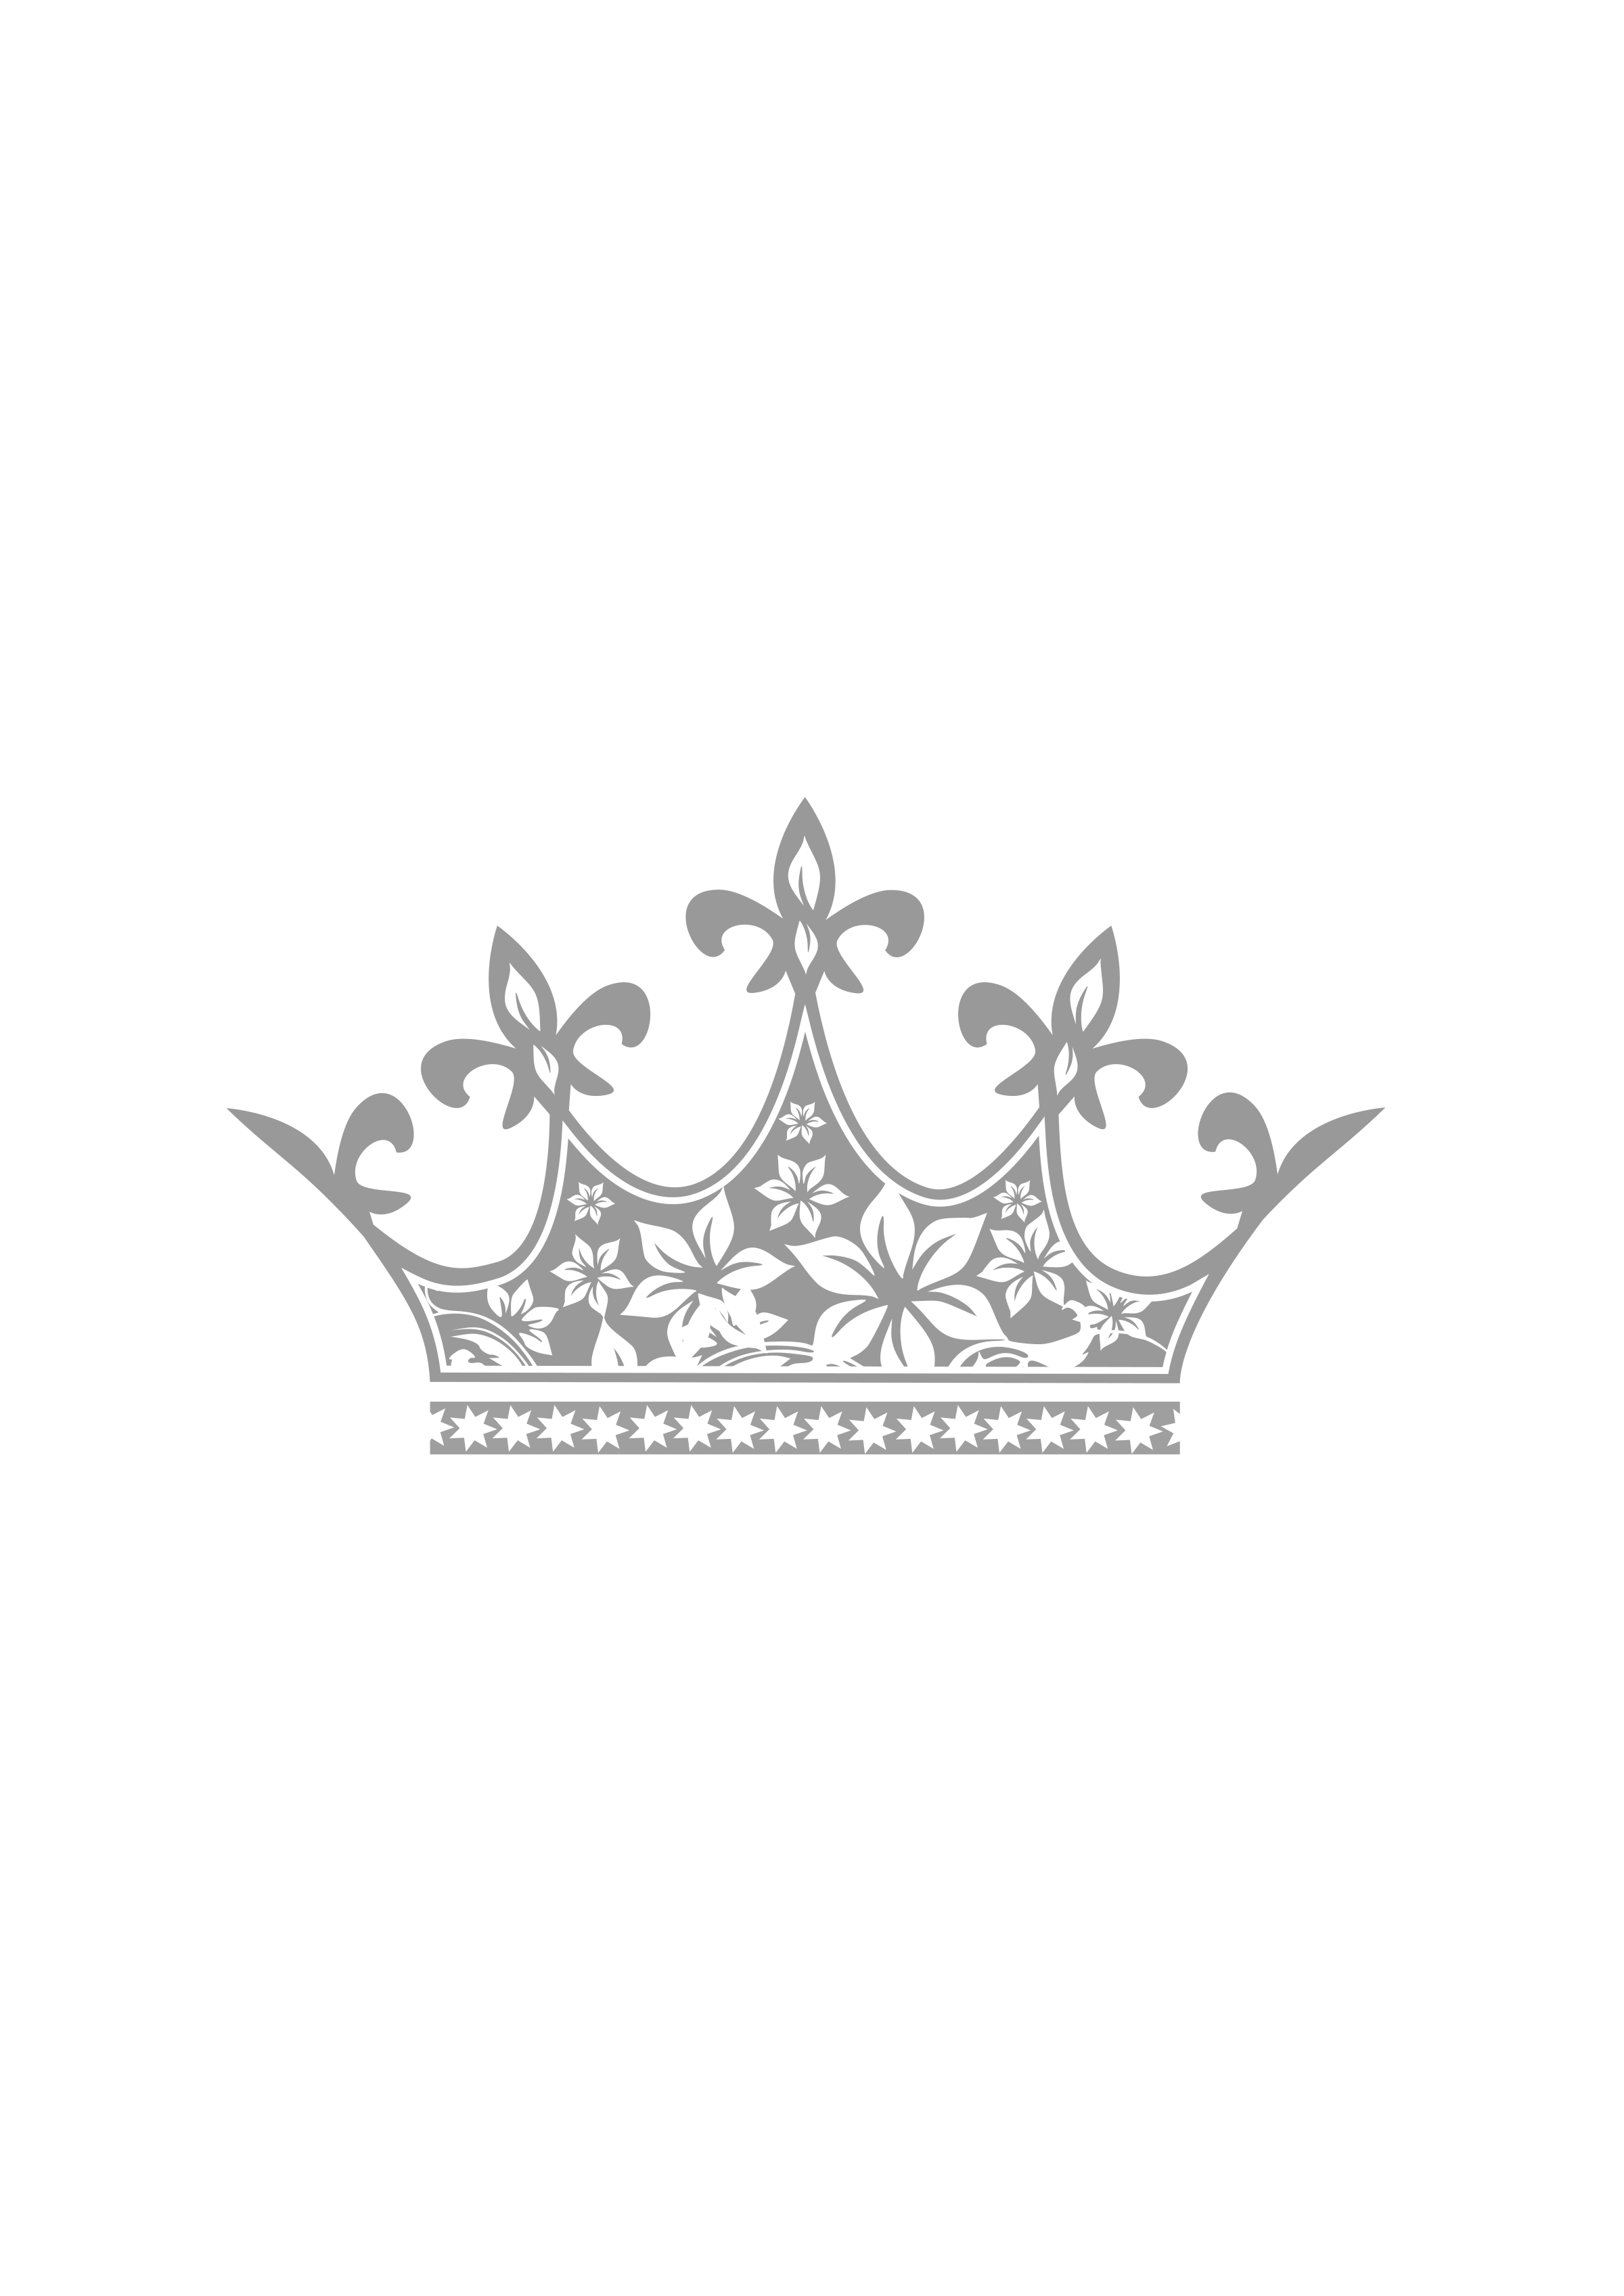 image black and white Mr clipart crowning.  collection of crown